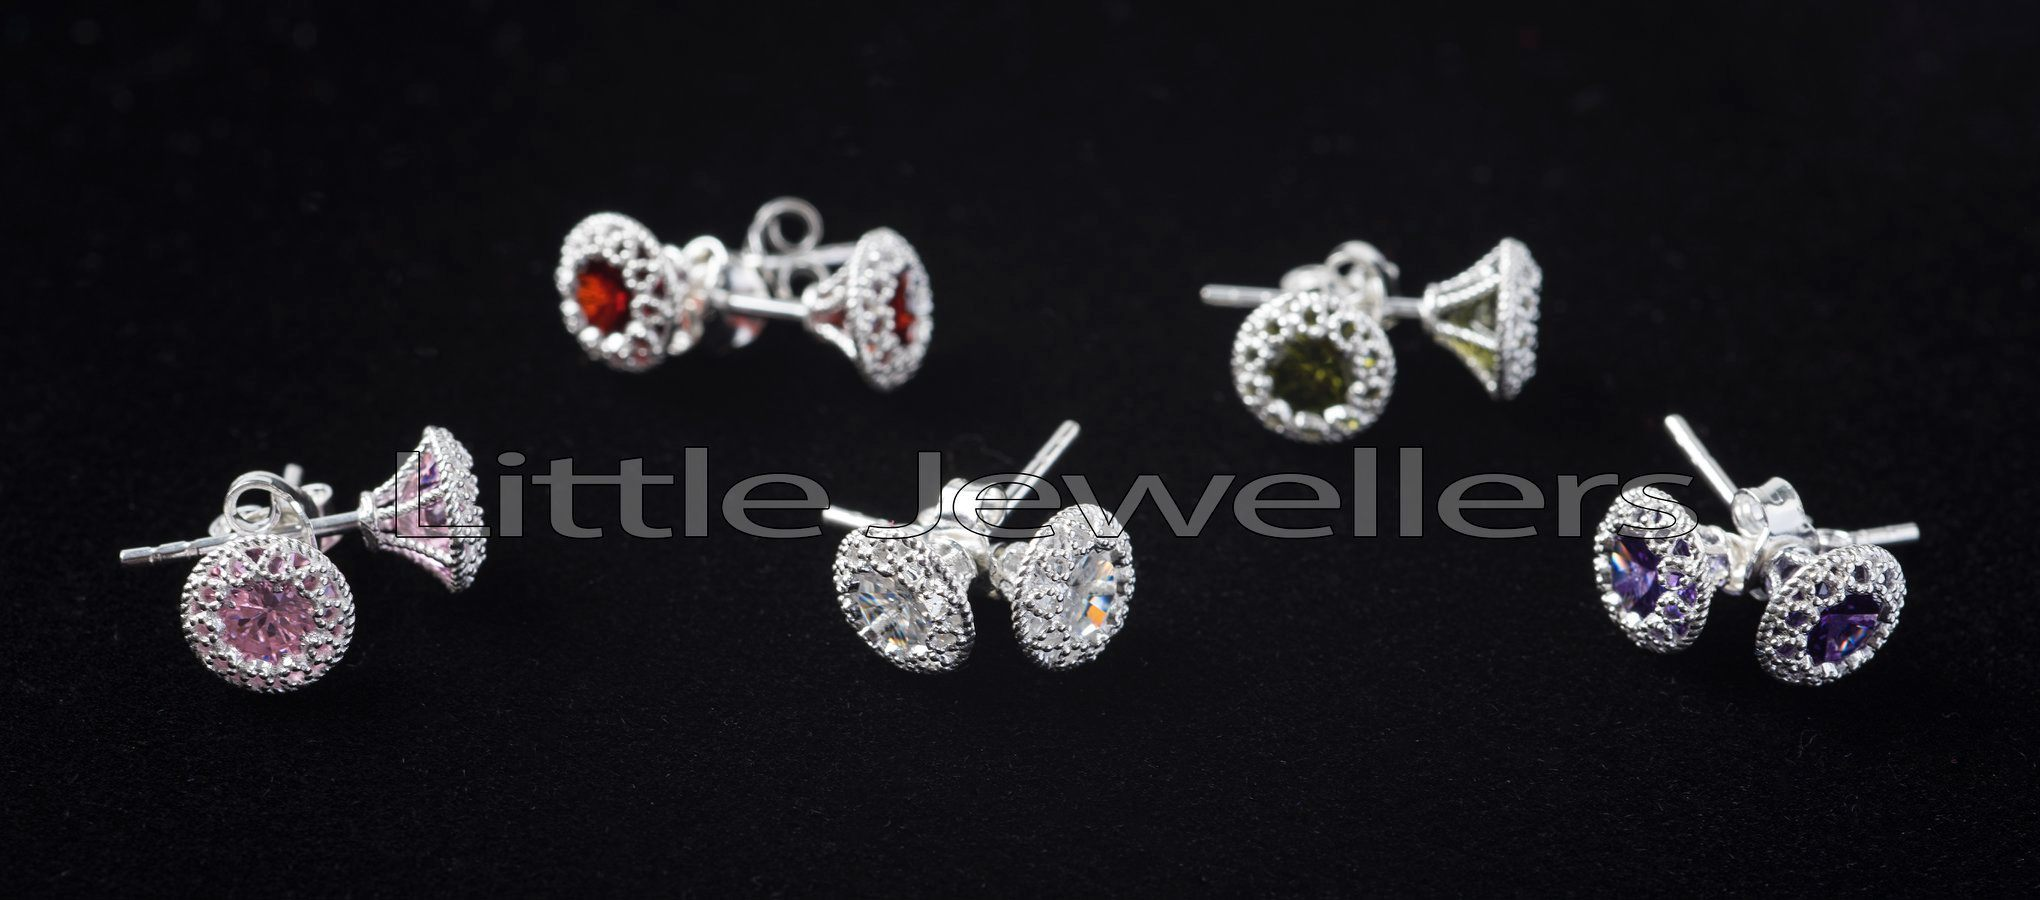 Add a touch of color and style to any ensemble with this pure silver stud earrings